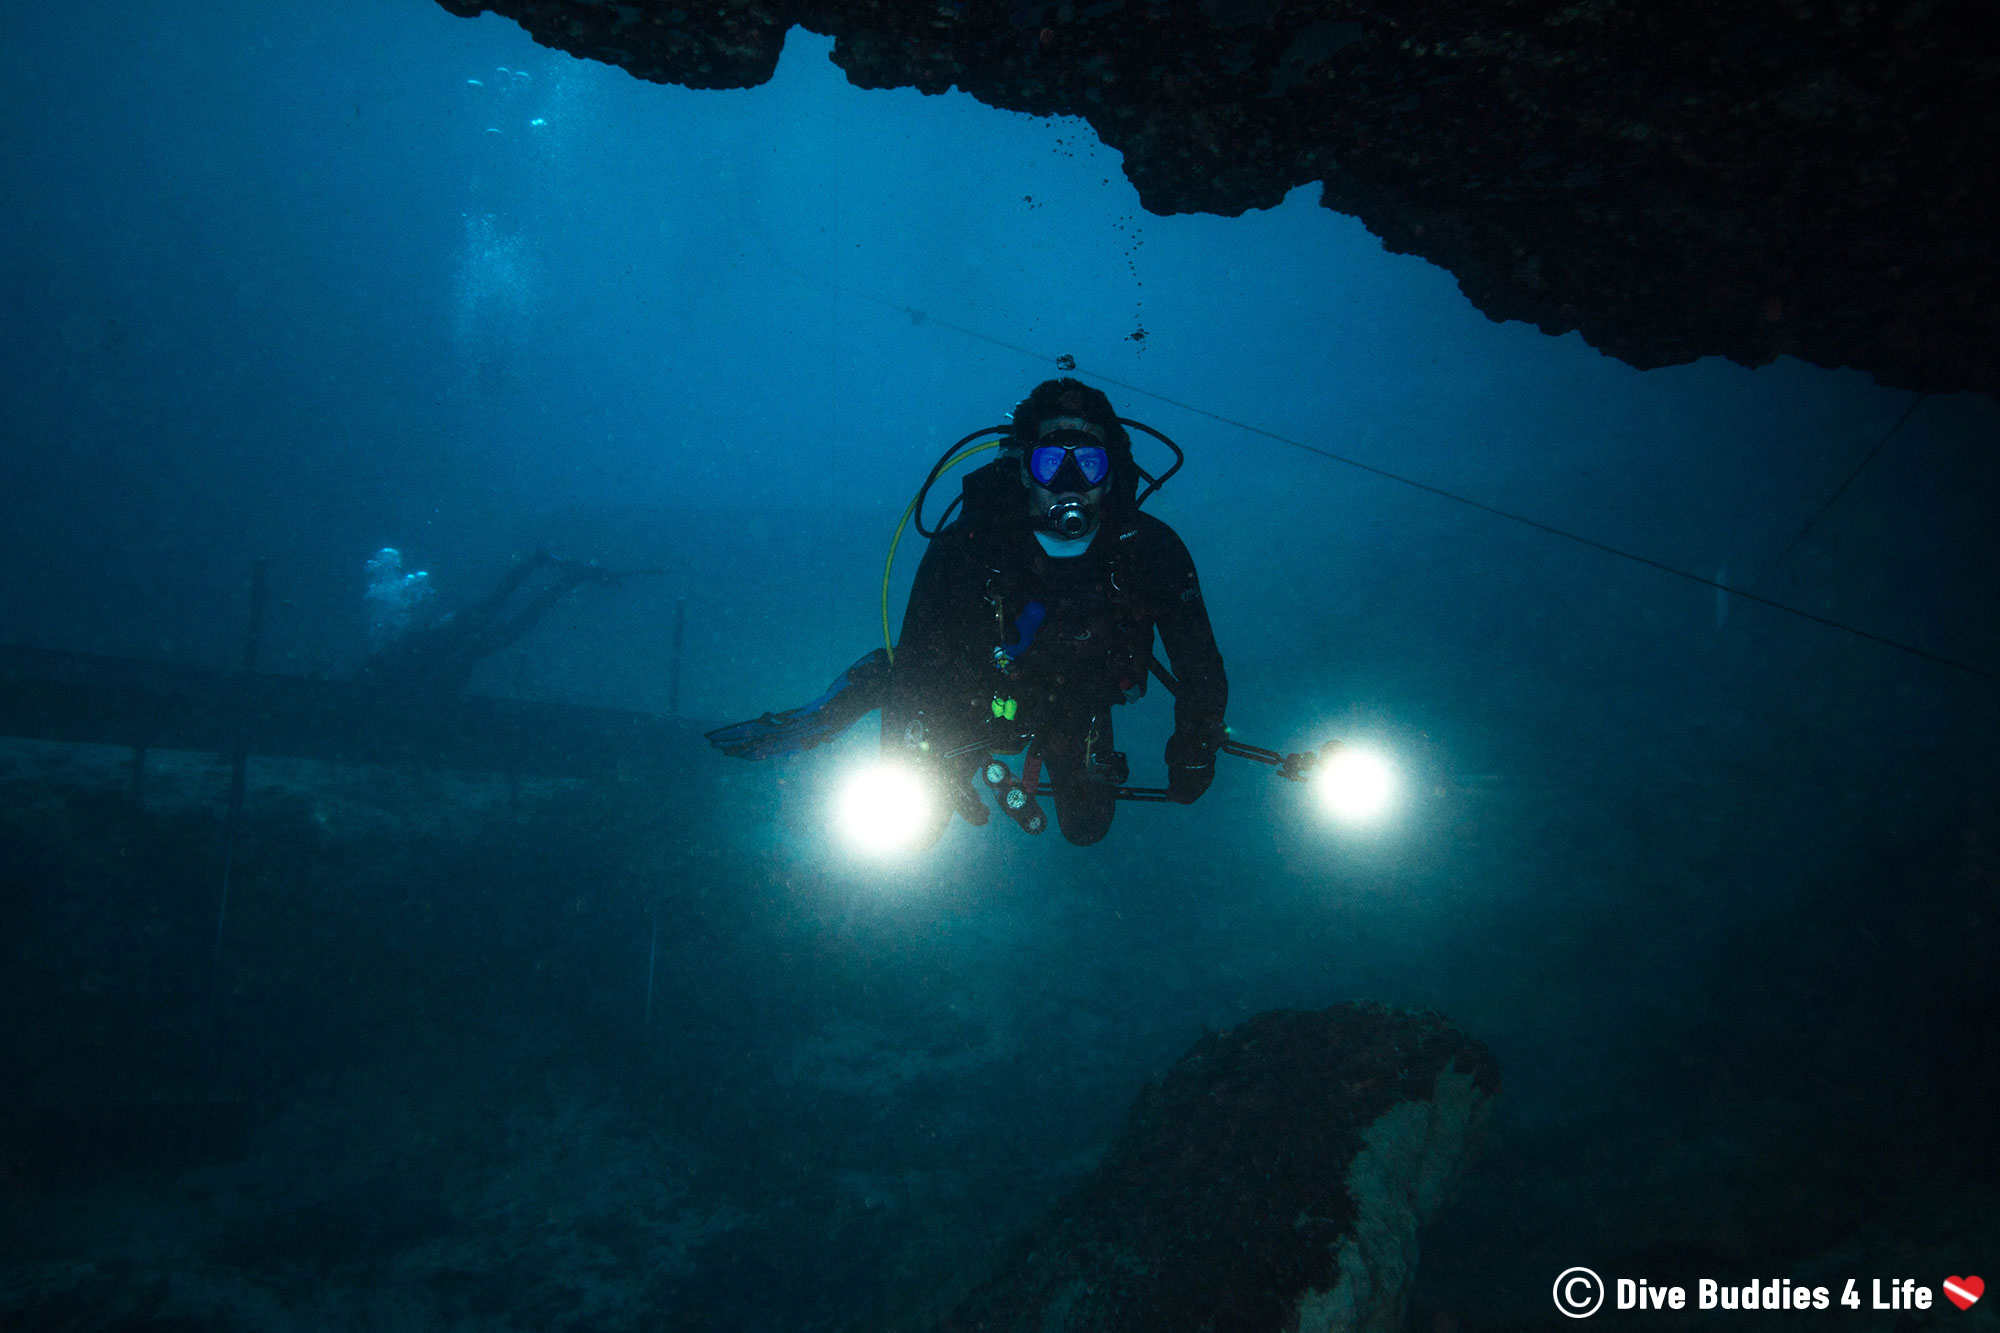 Joey Scuba Diving Blue Grotto With Strobes On His Camera